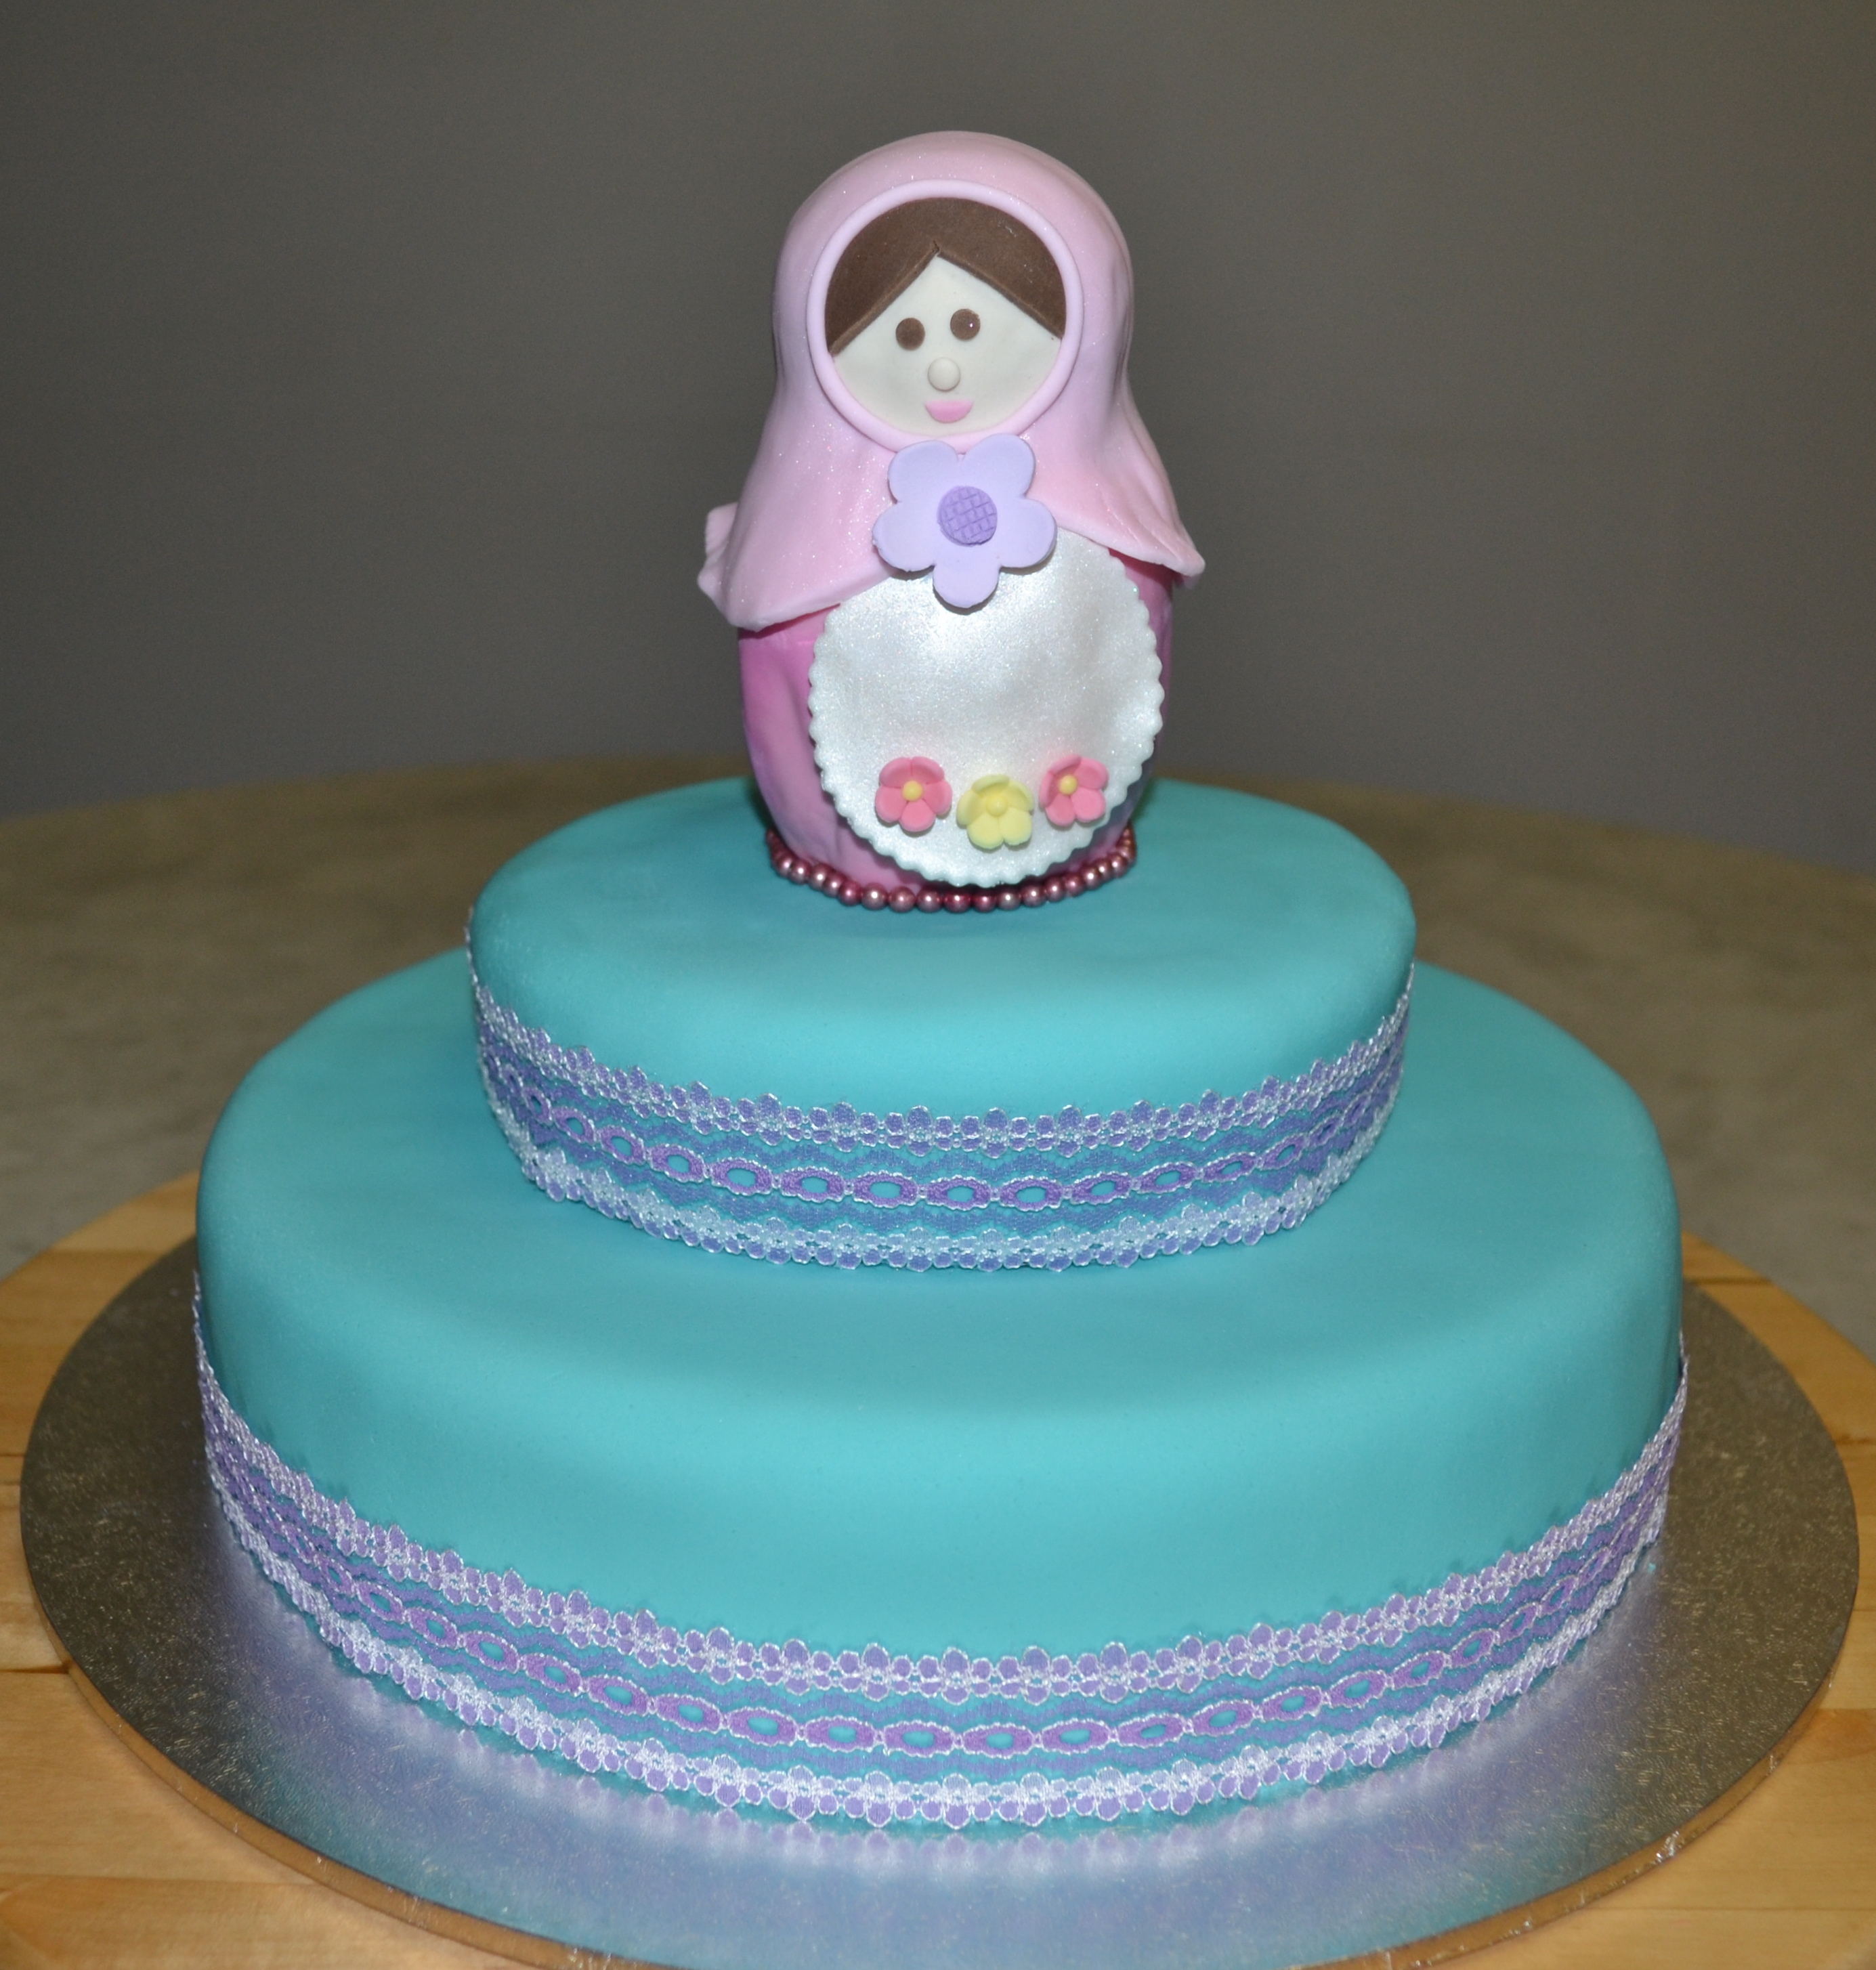 Babushka Doll Is Red Velvet With Fondant Cake Is White Chocolate Mud Cake With Bc on Cake Central